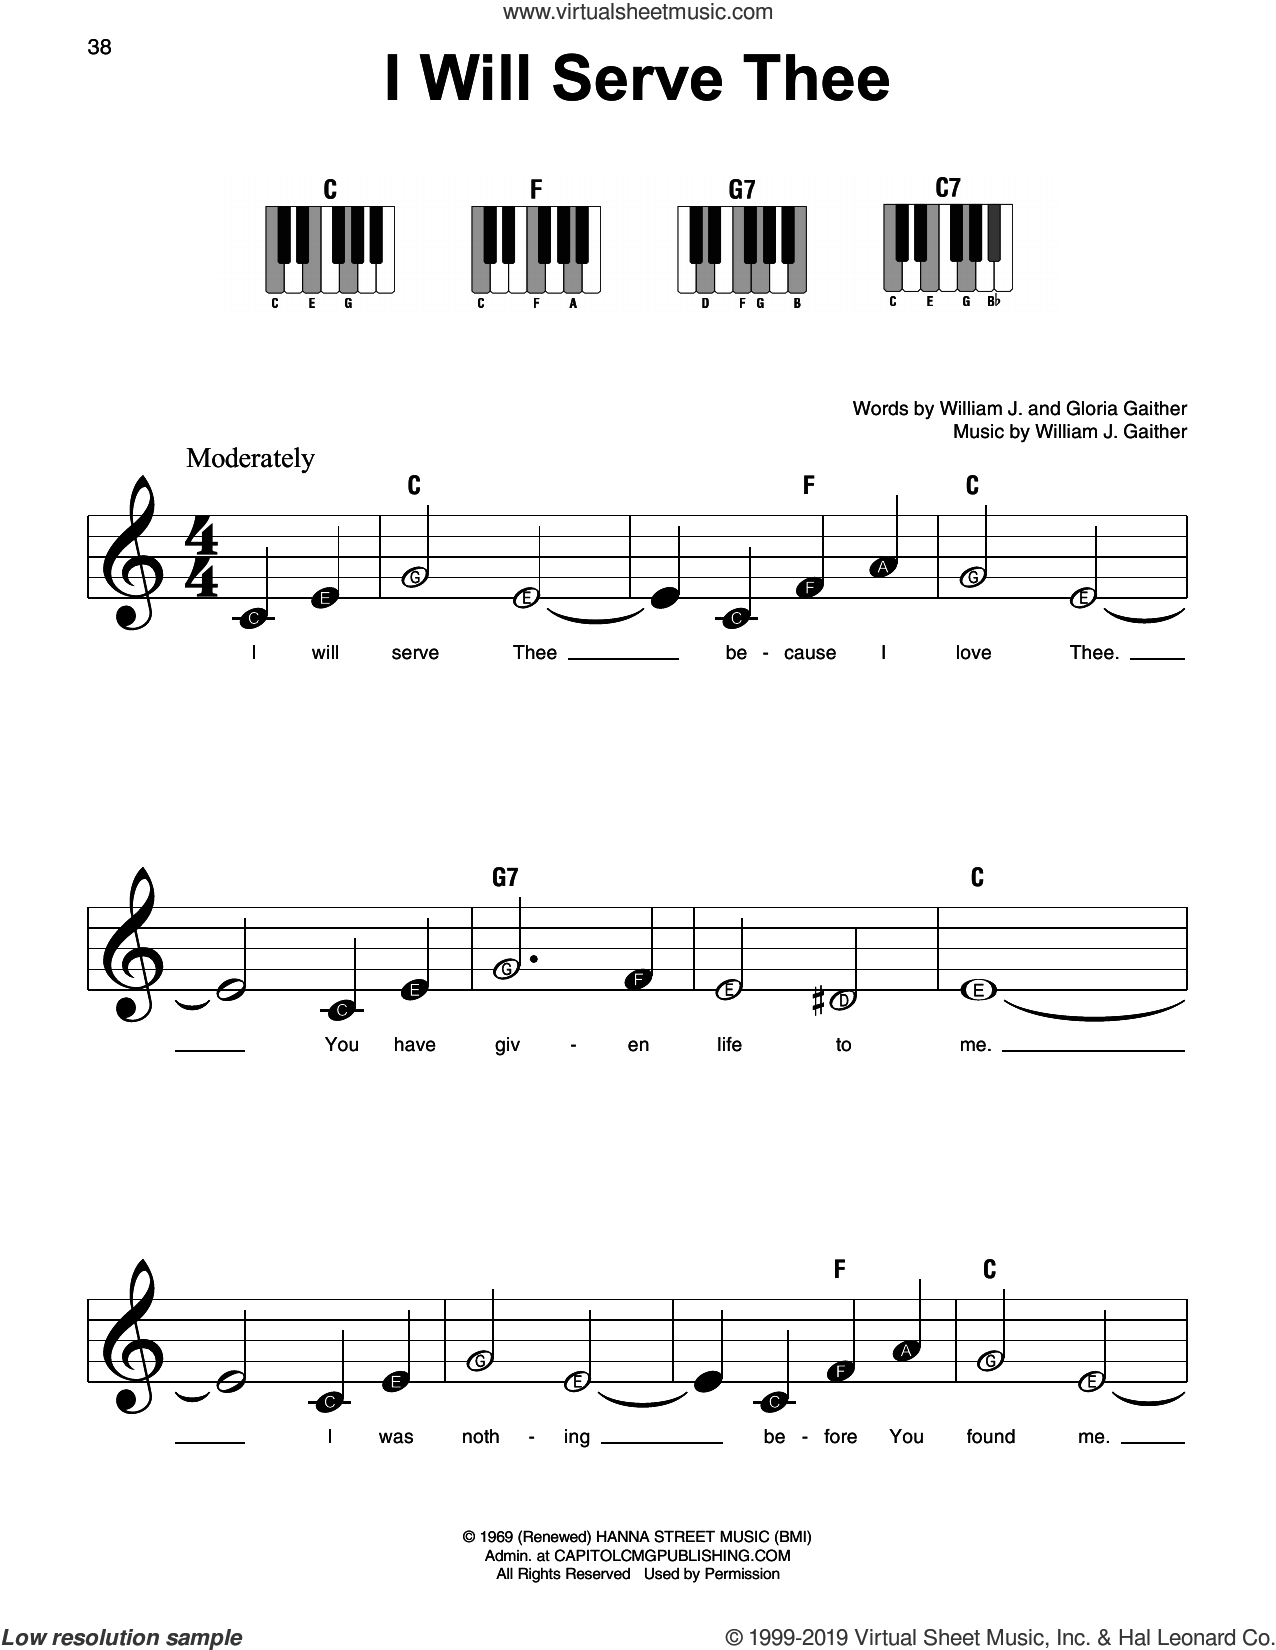 I Will Serve Thee sheet music for piano solo by William J. Gaither and Gloria Gaither, beginner skill level